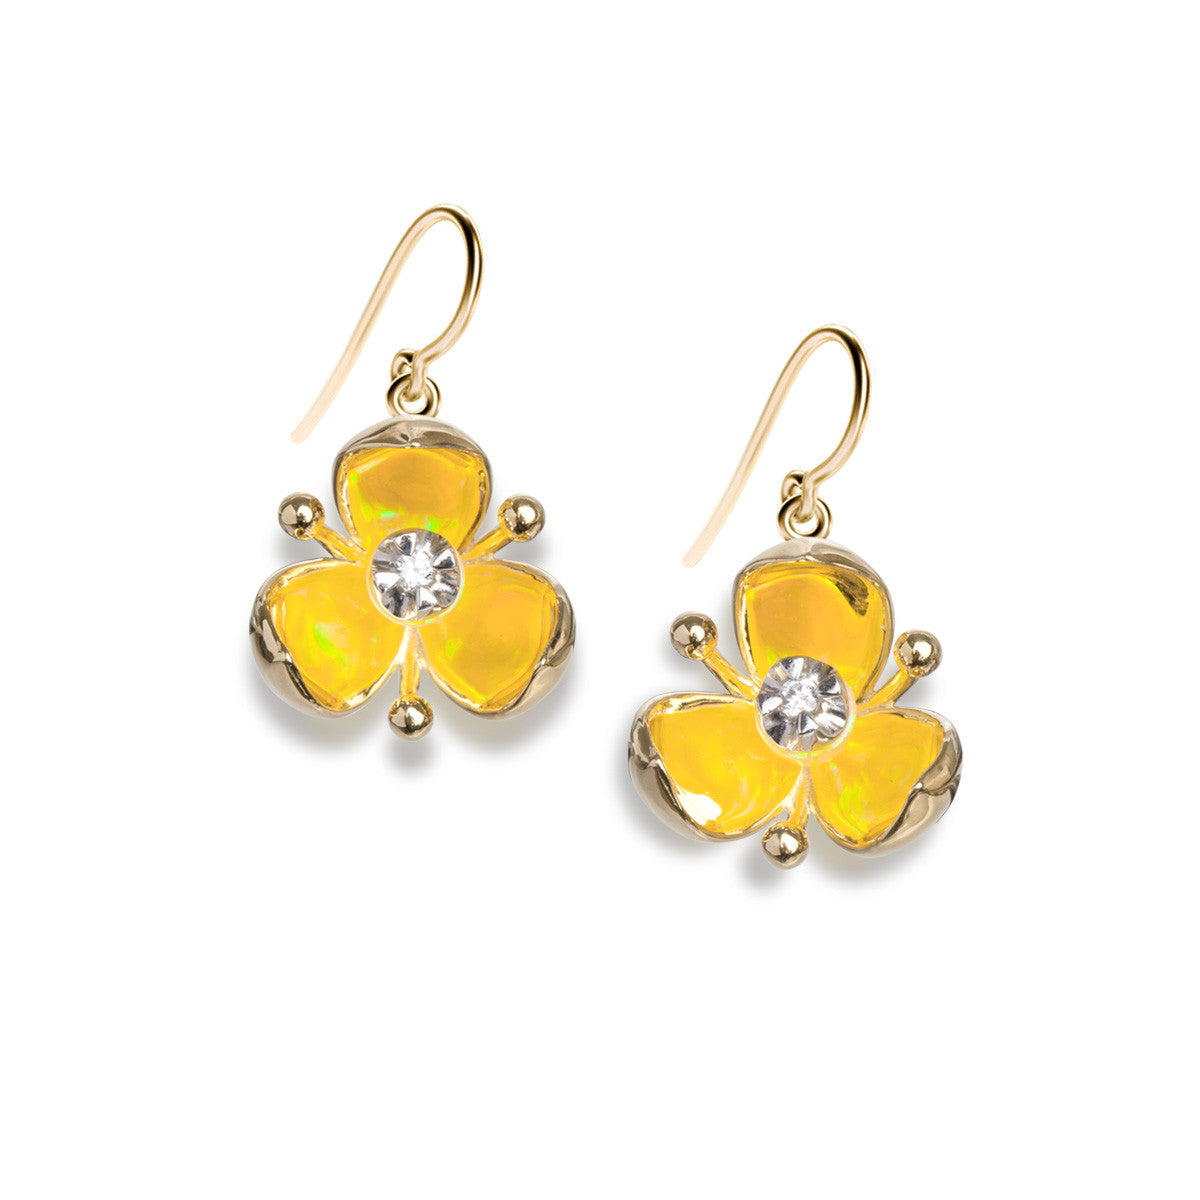 Illusia Diamond Earrings - Summer Yellow